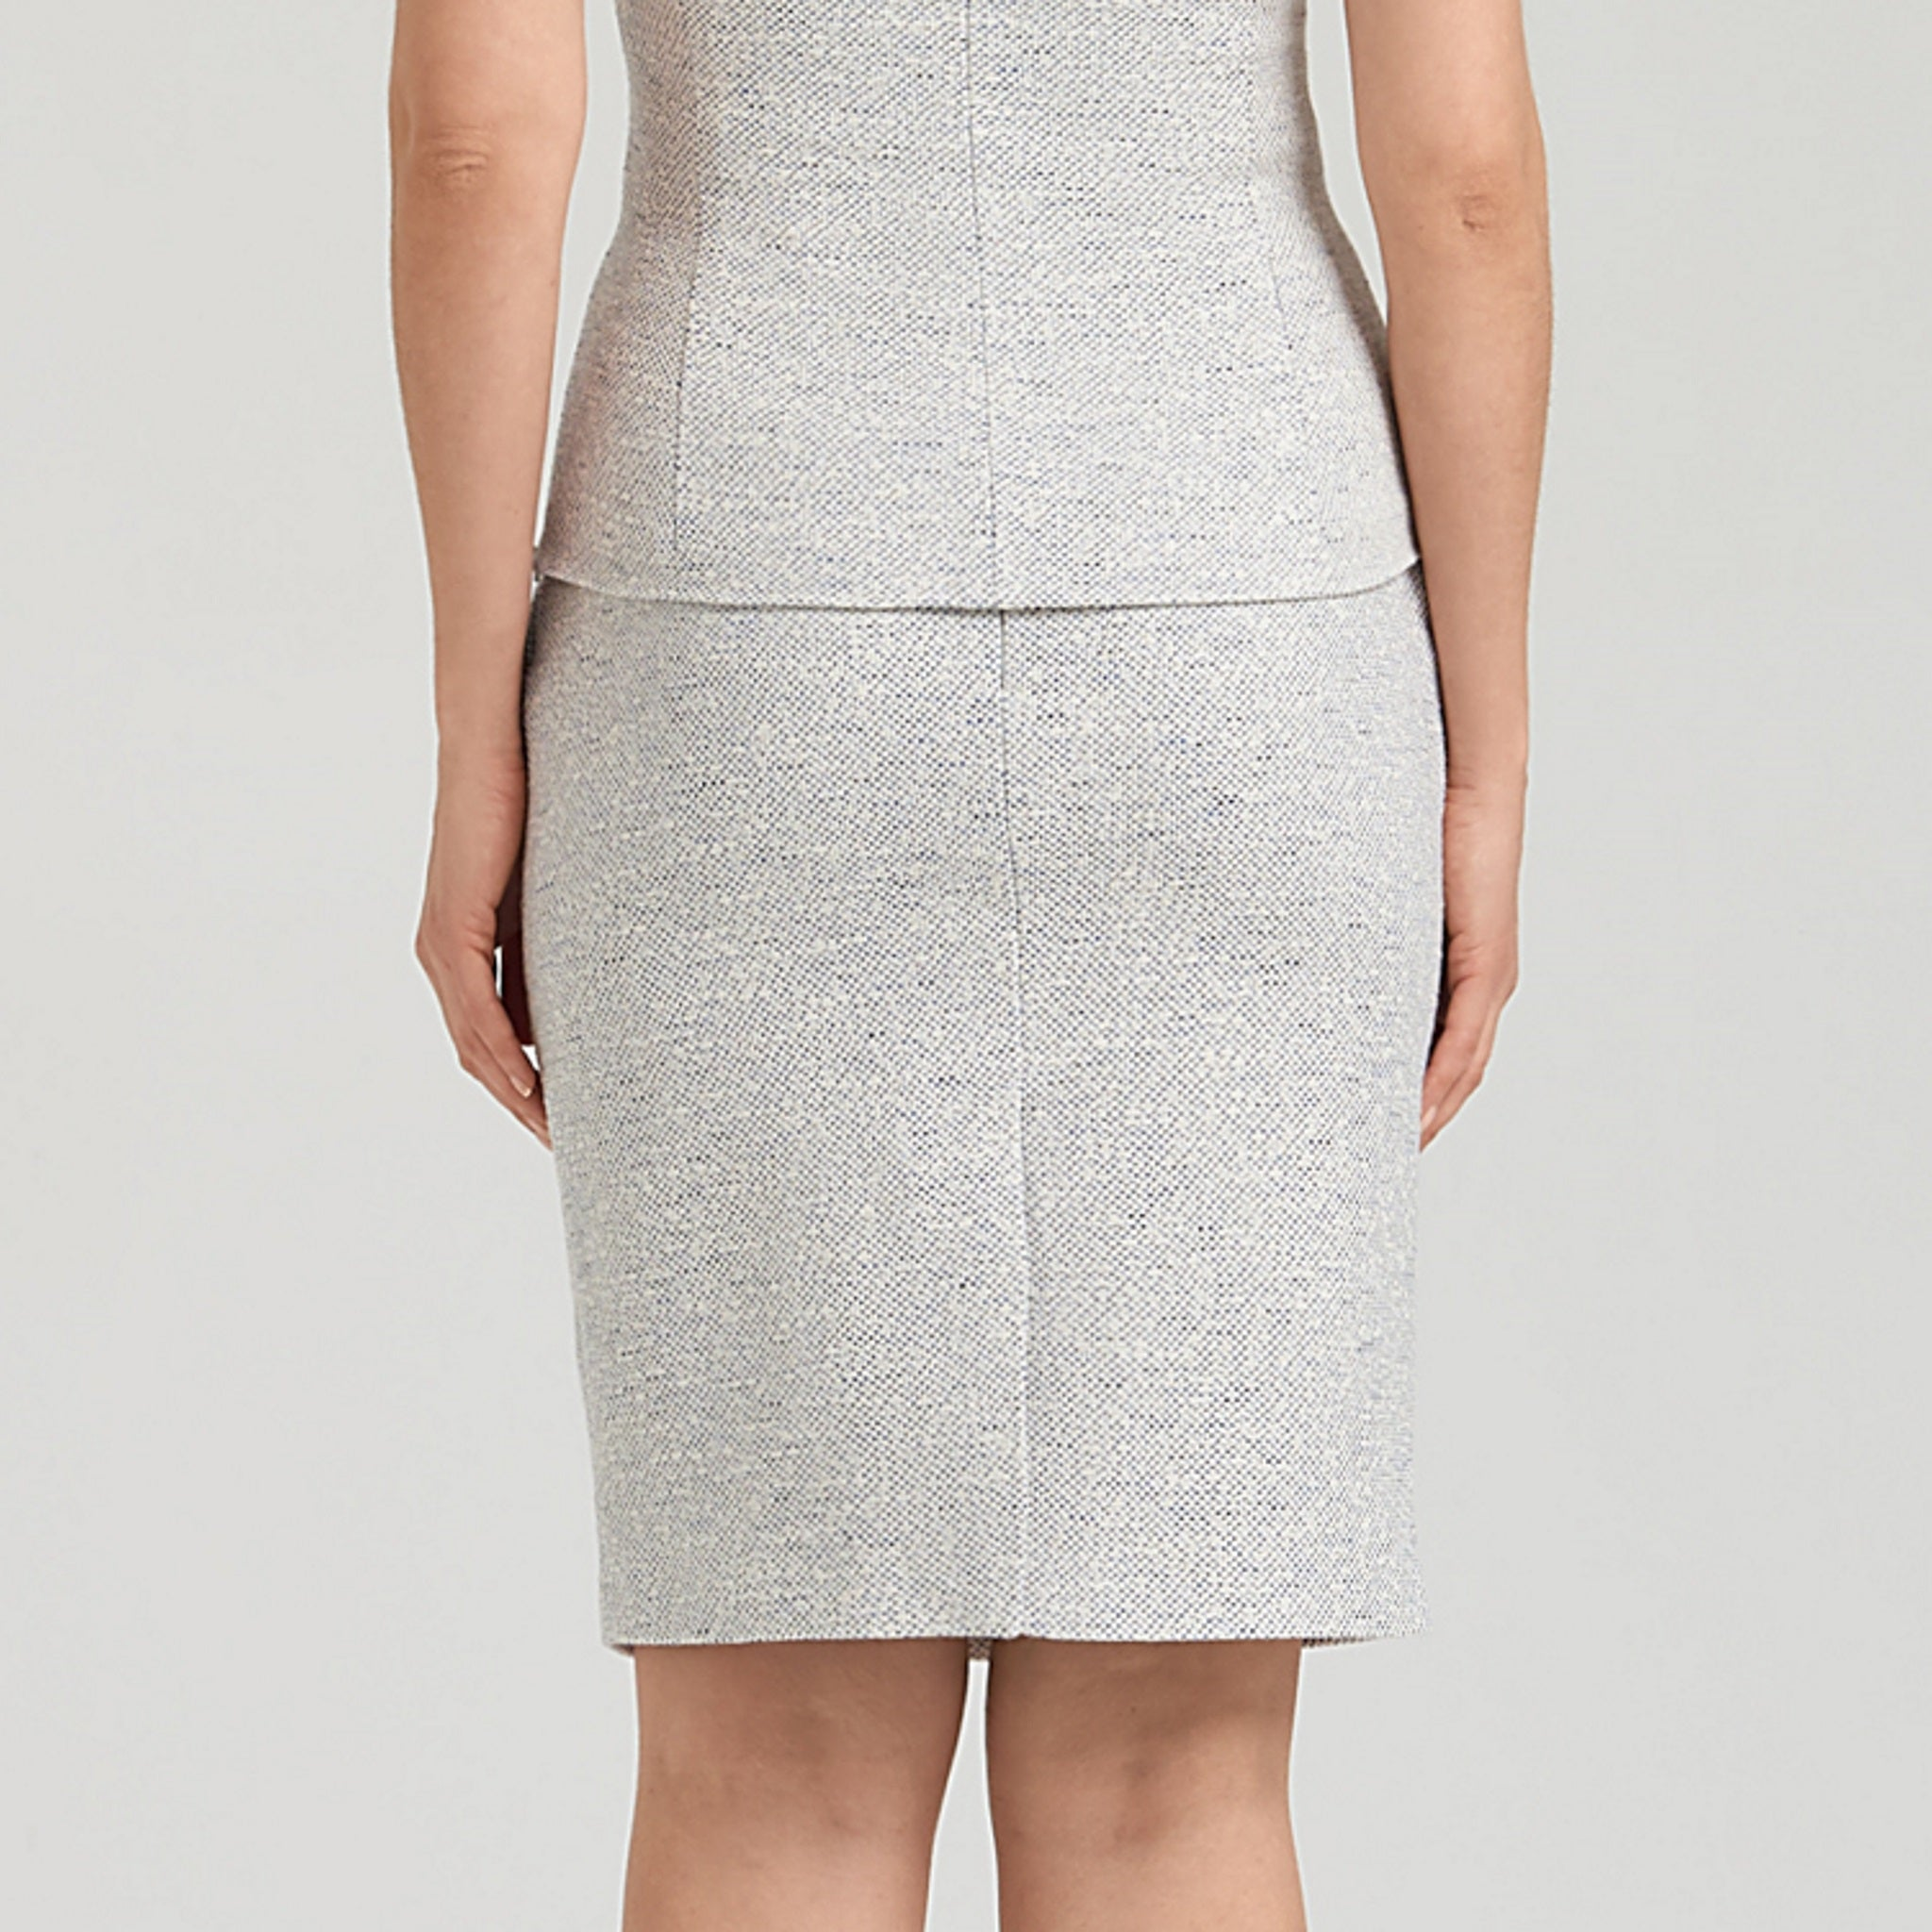 Stretch tweed pencil skirt, white tweed